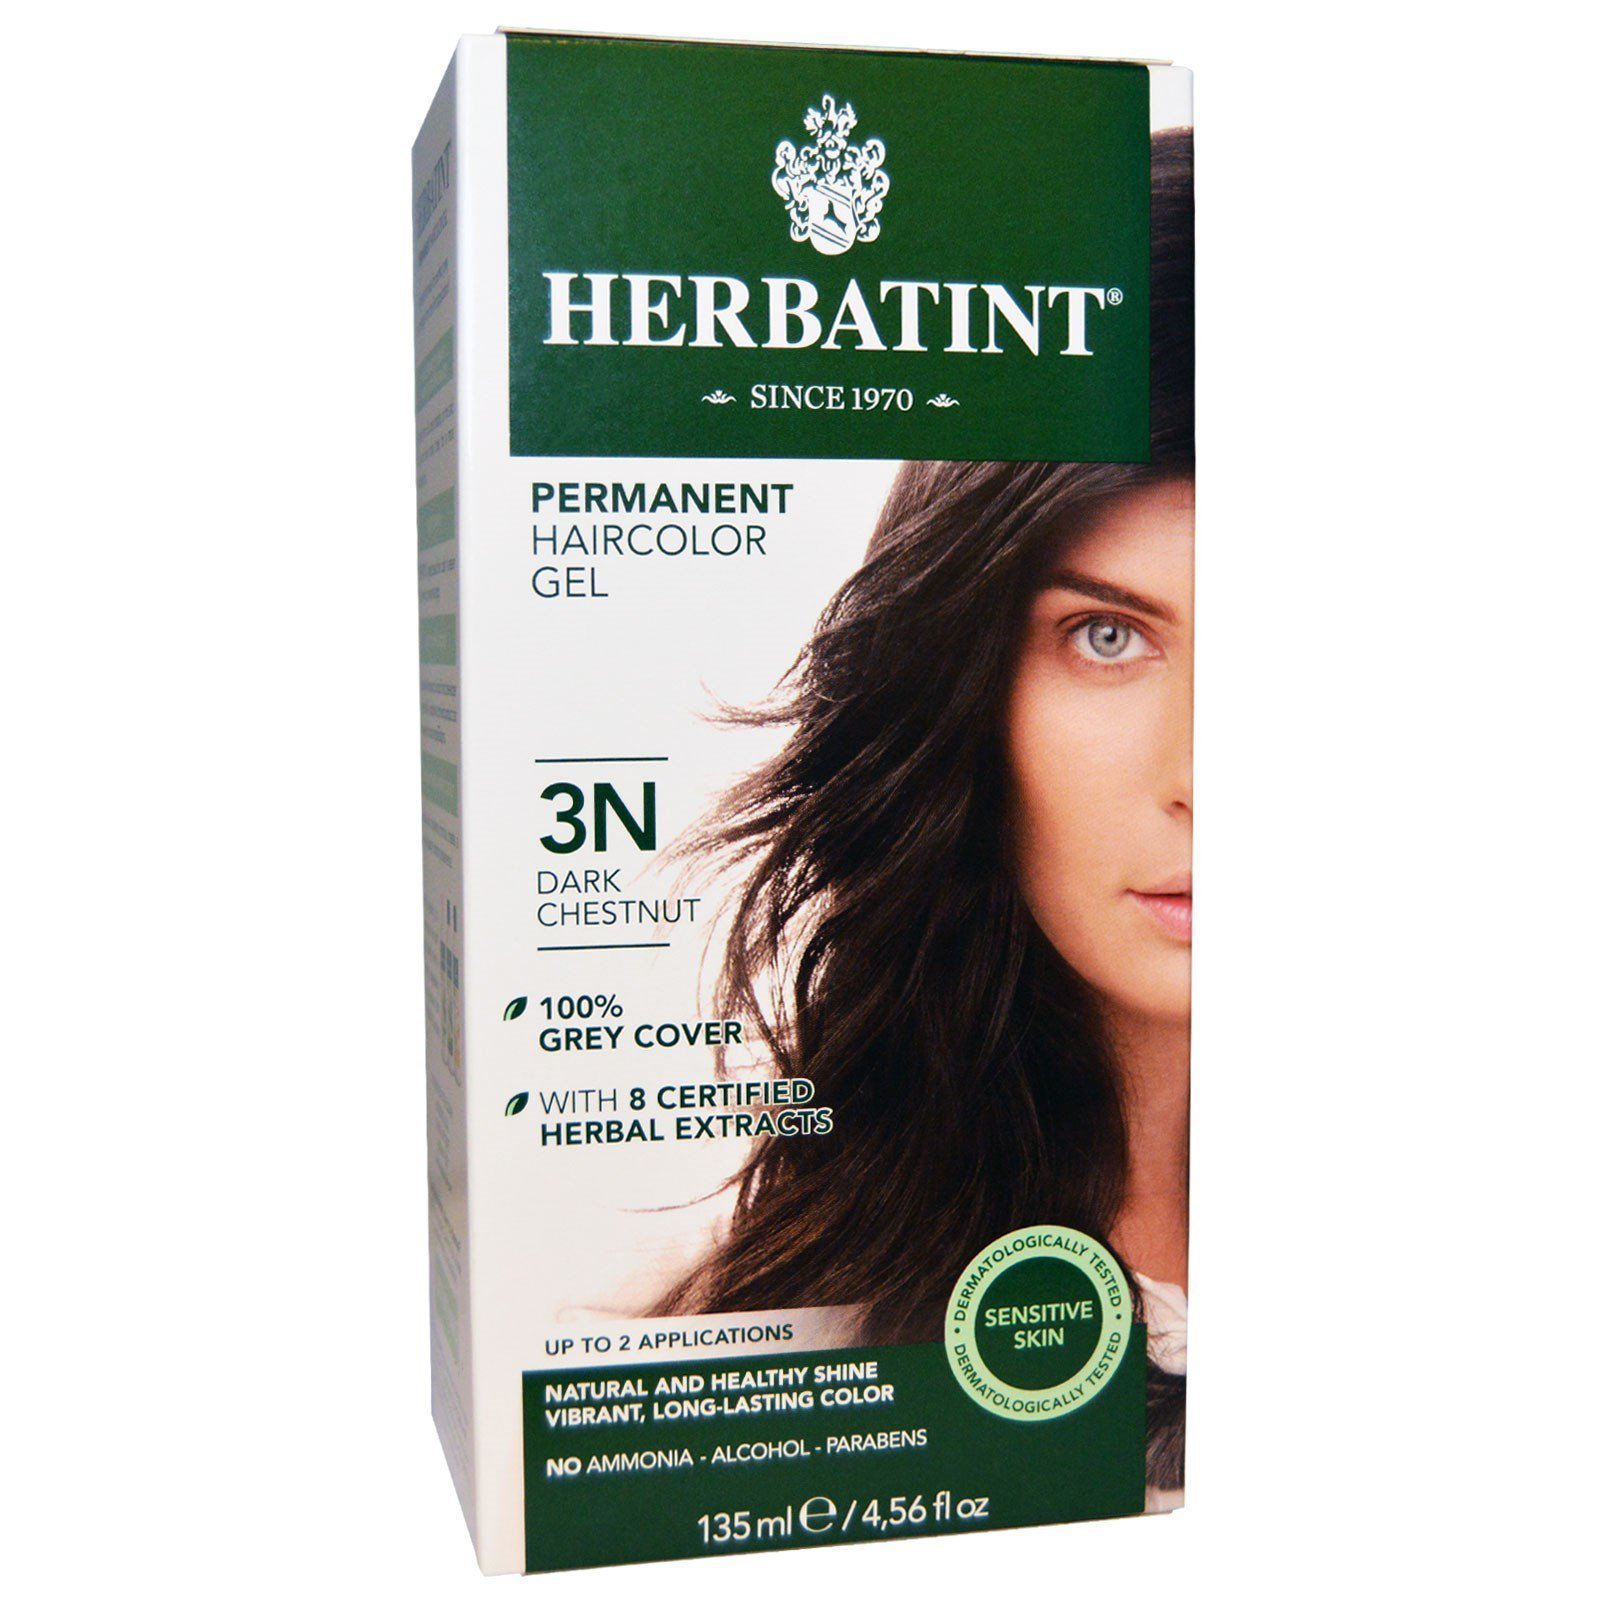 New Herbatint Permanent Hair Color 3N Dark Chestnut 4 56 Ideas With Pictures